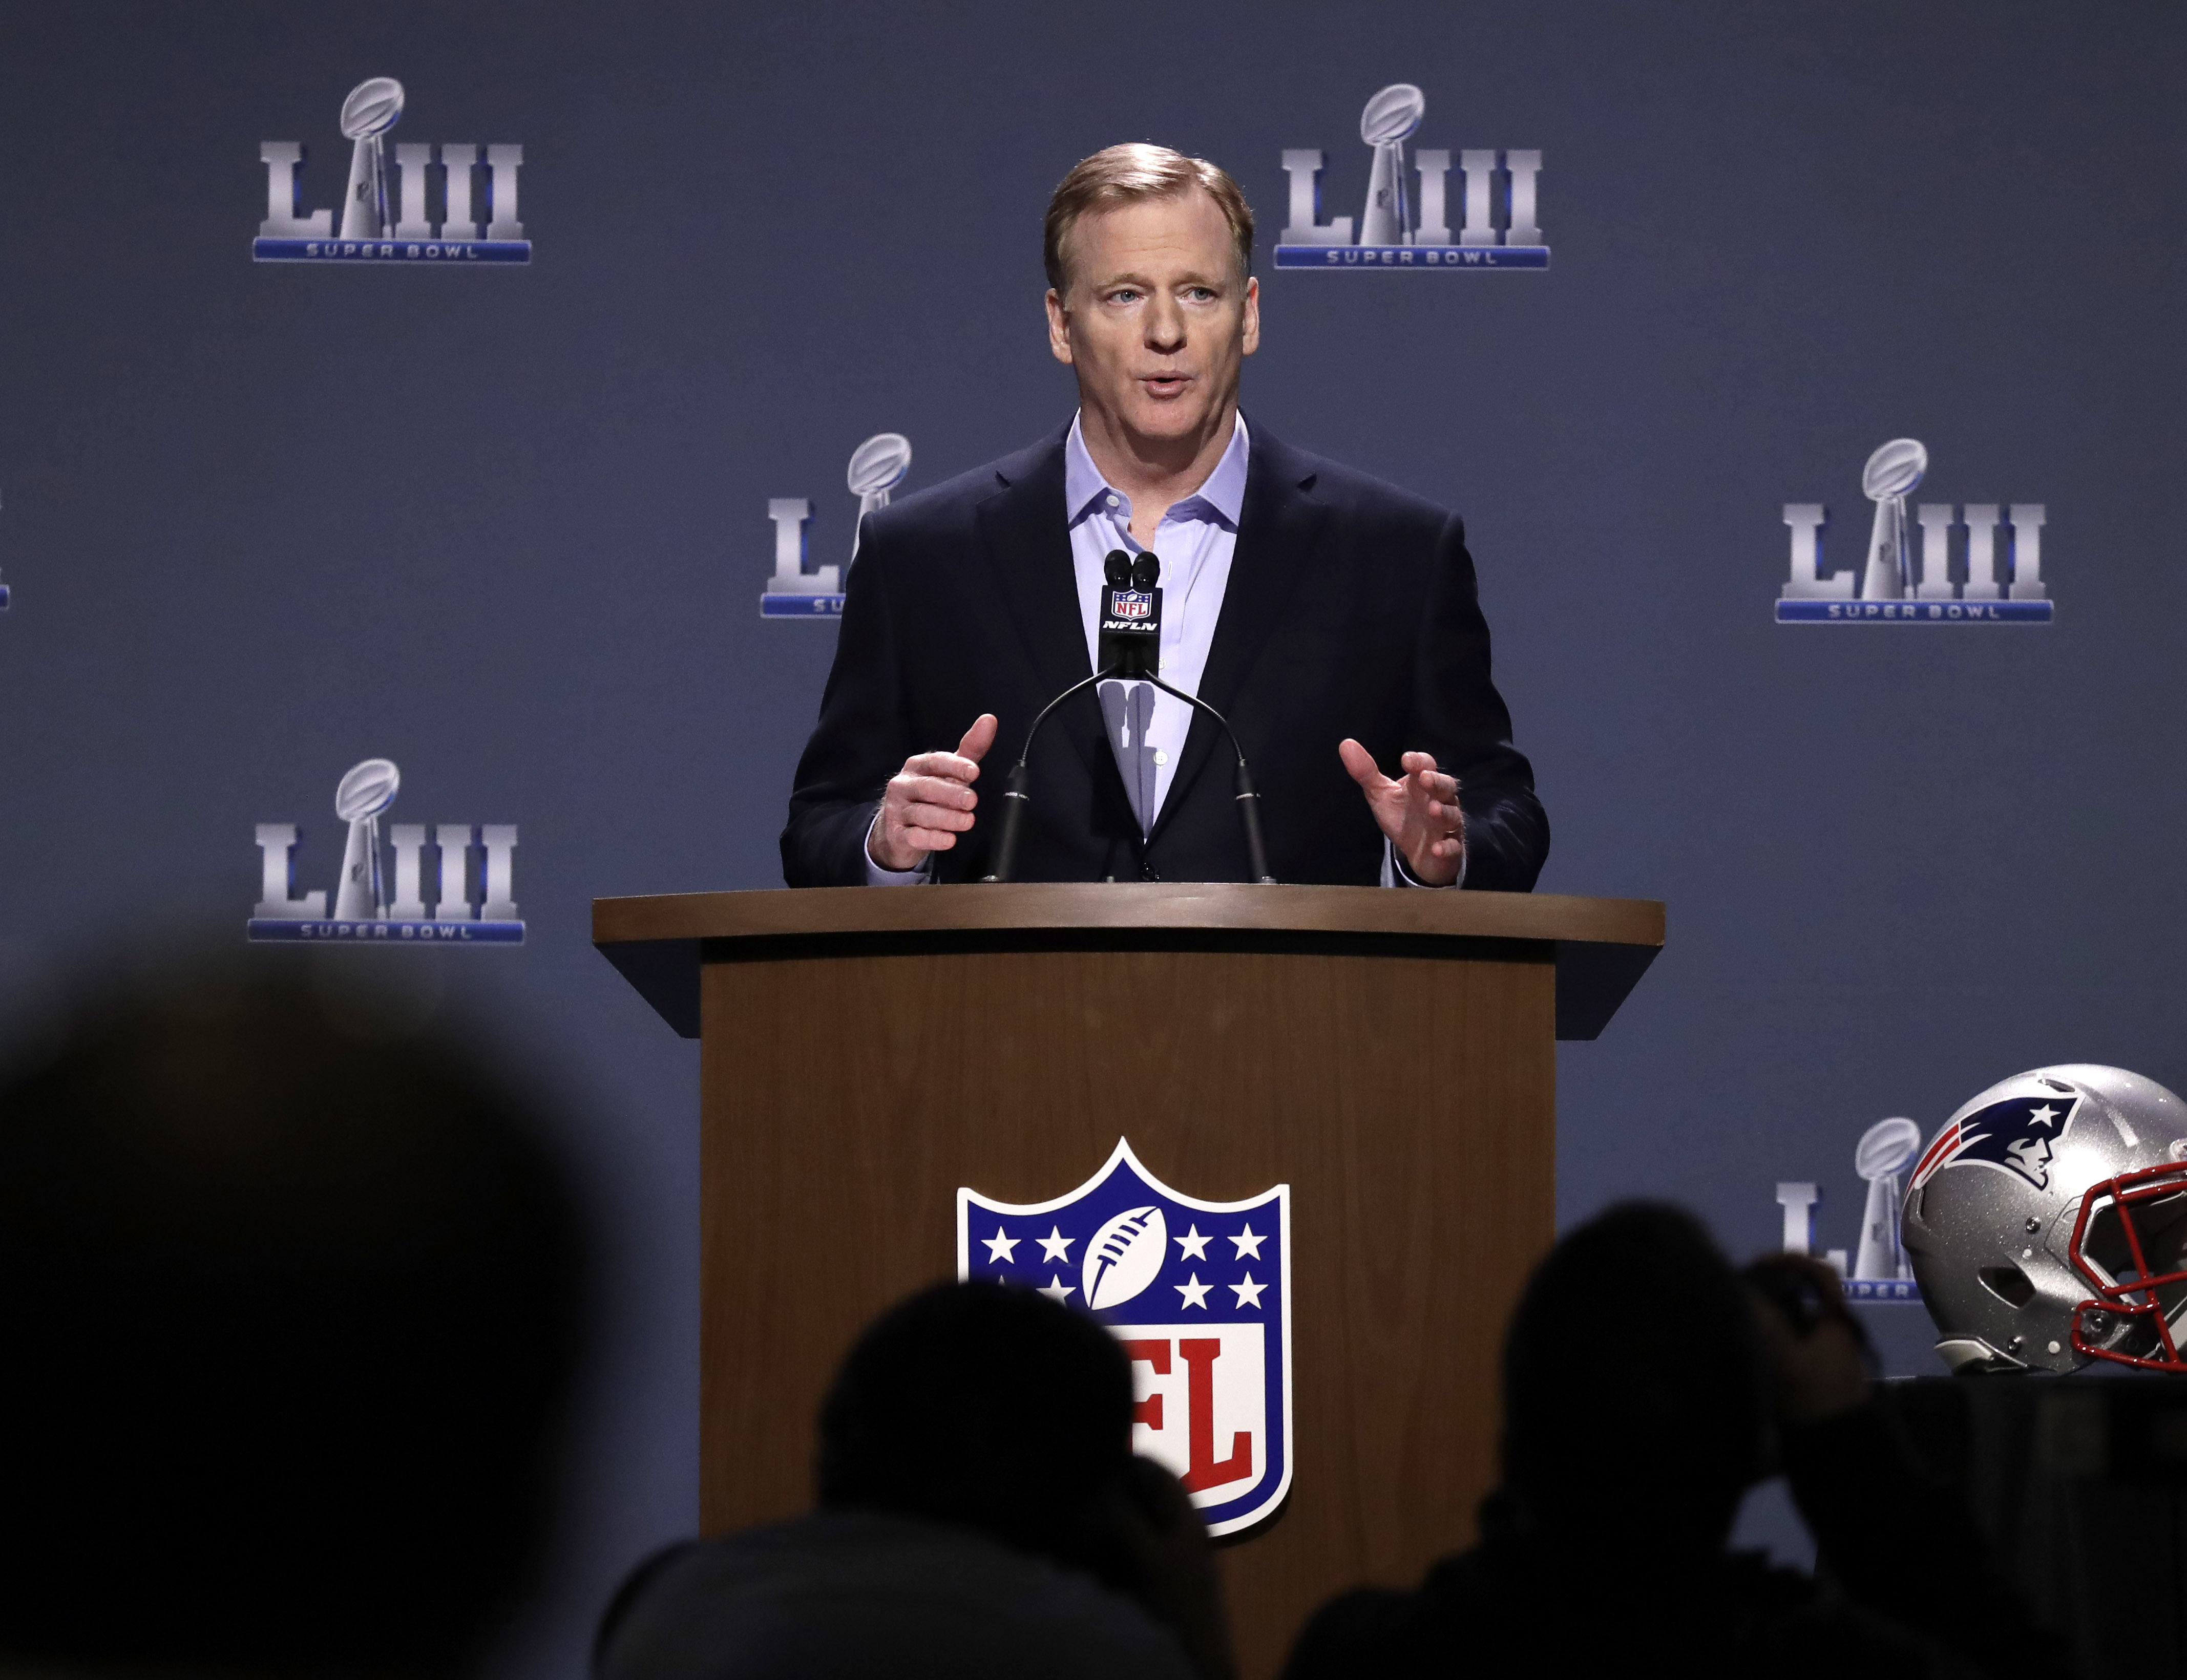 The Latest: Goodell says rules changes may be considered